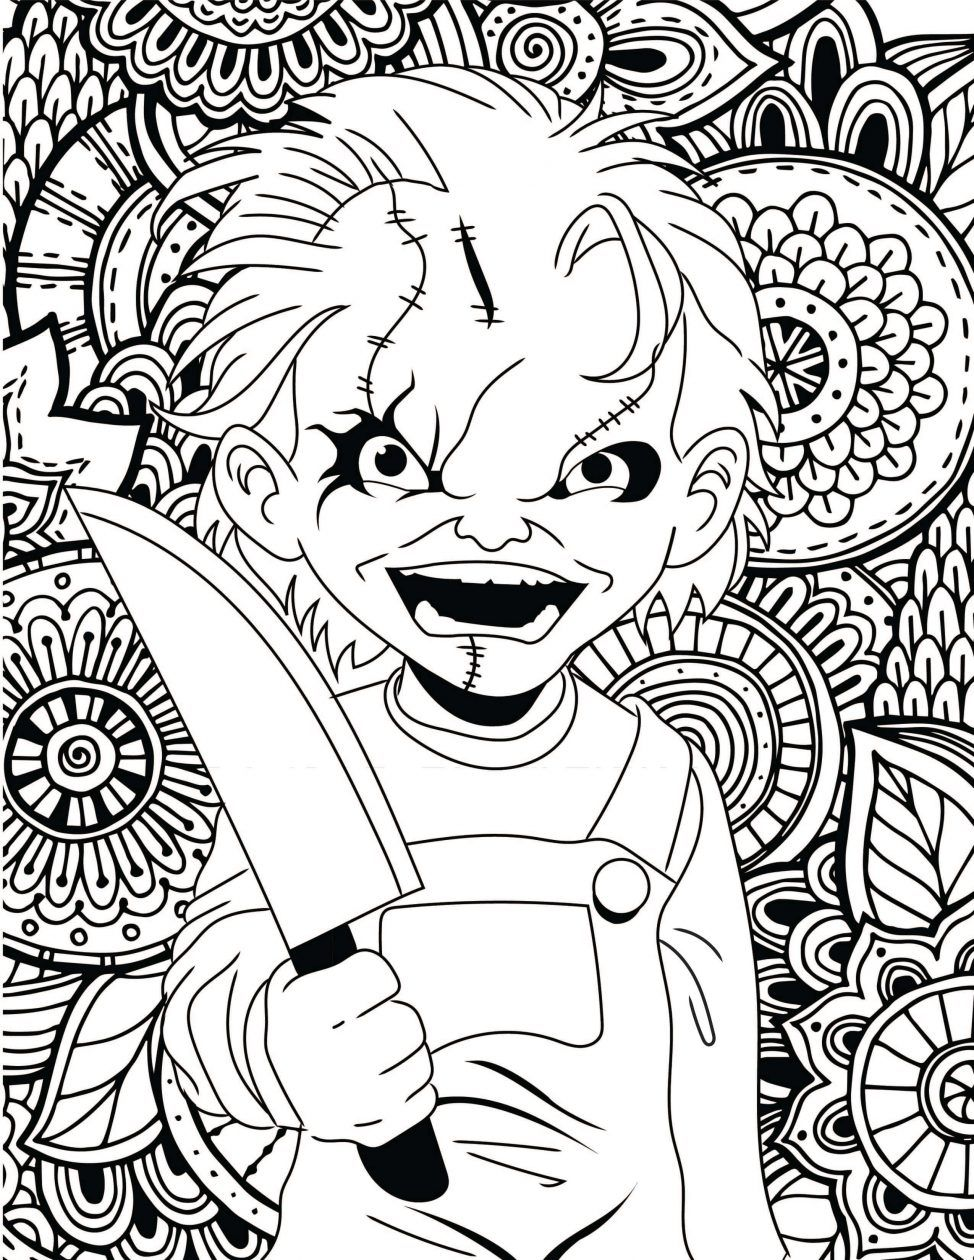 horror coloring pages for adults Image result for little house of horror coloring pages | Witches  horror coloring pages for adults